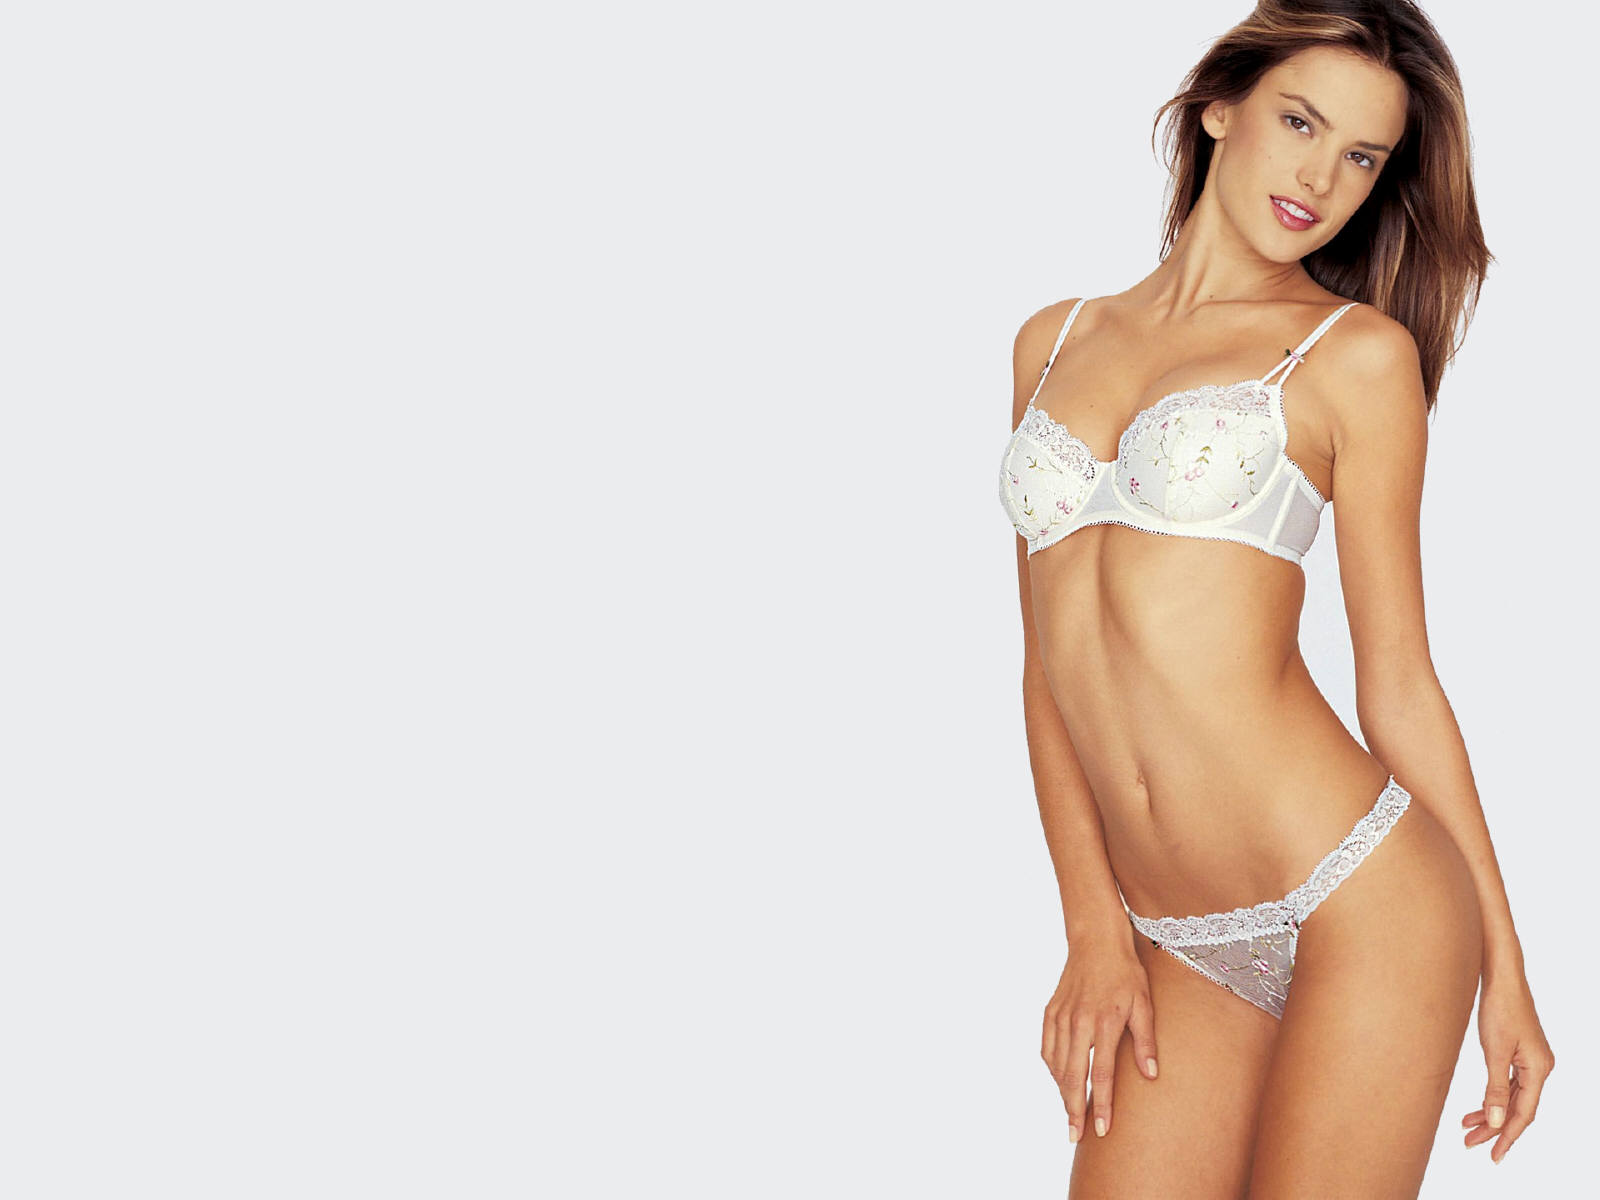 Alessandra Ambrosio Wallpaper - HD Wallpapers